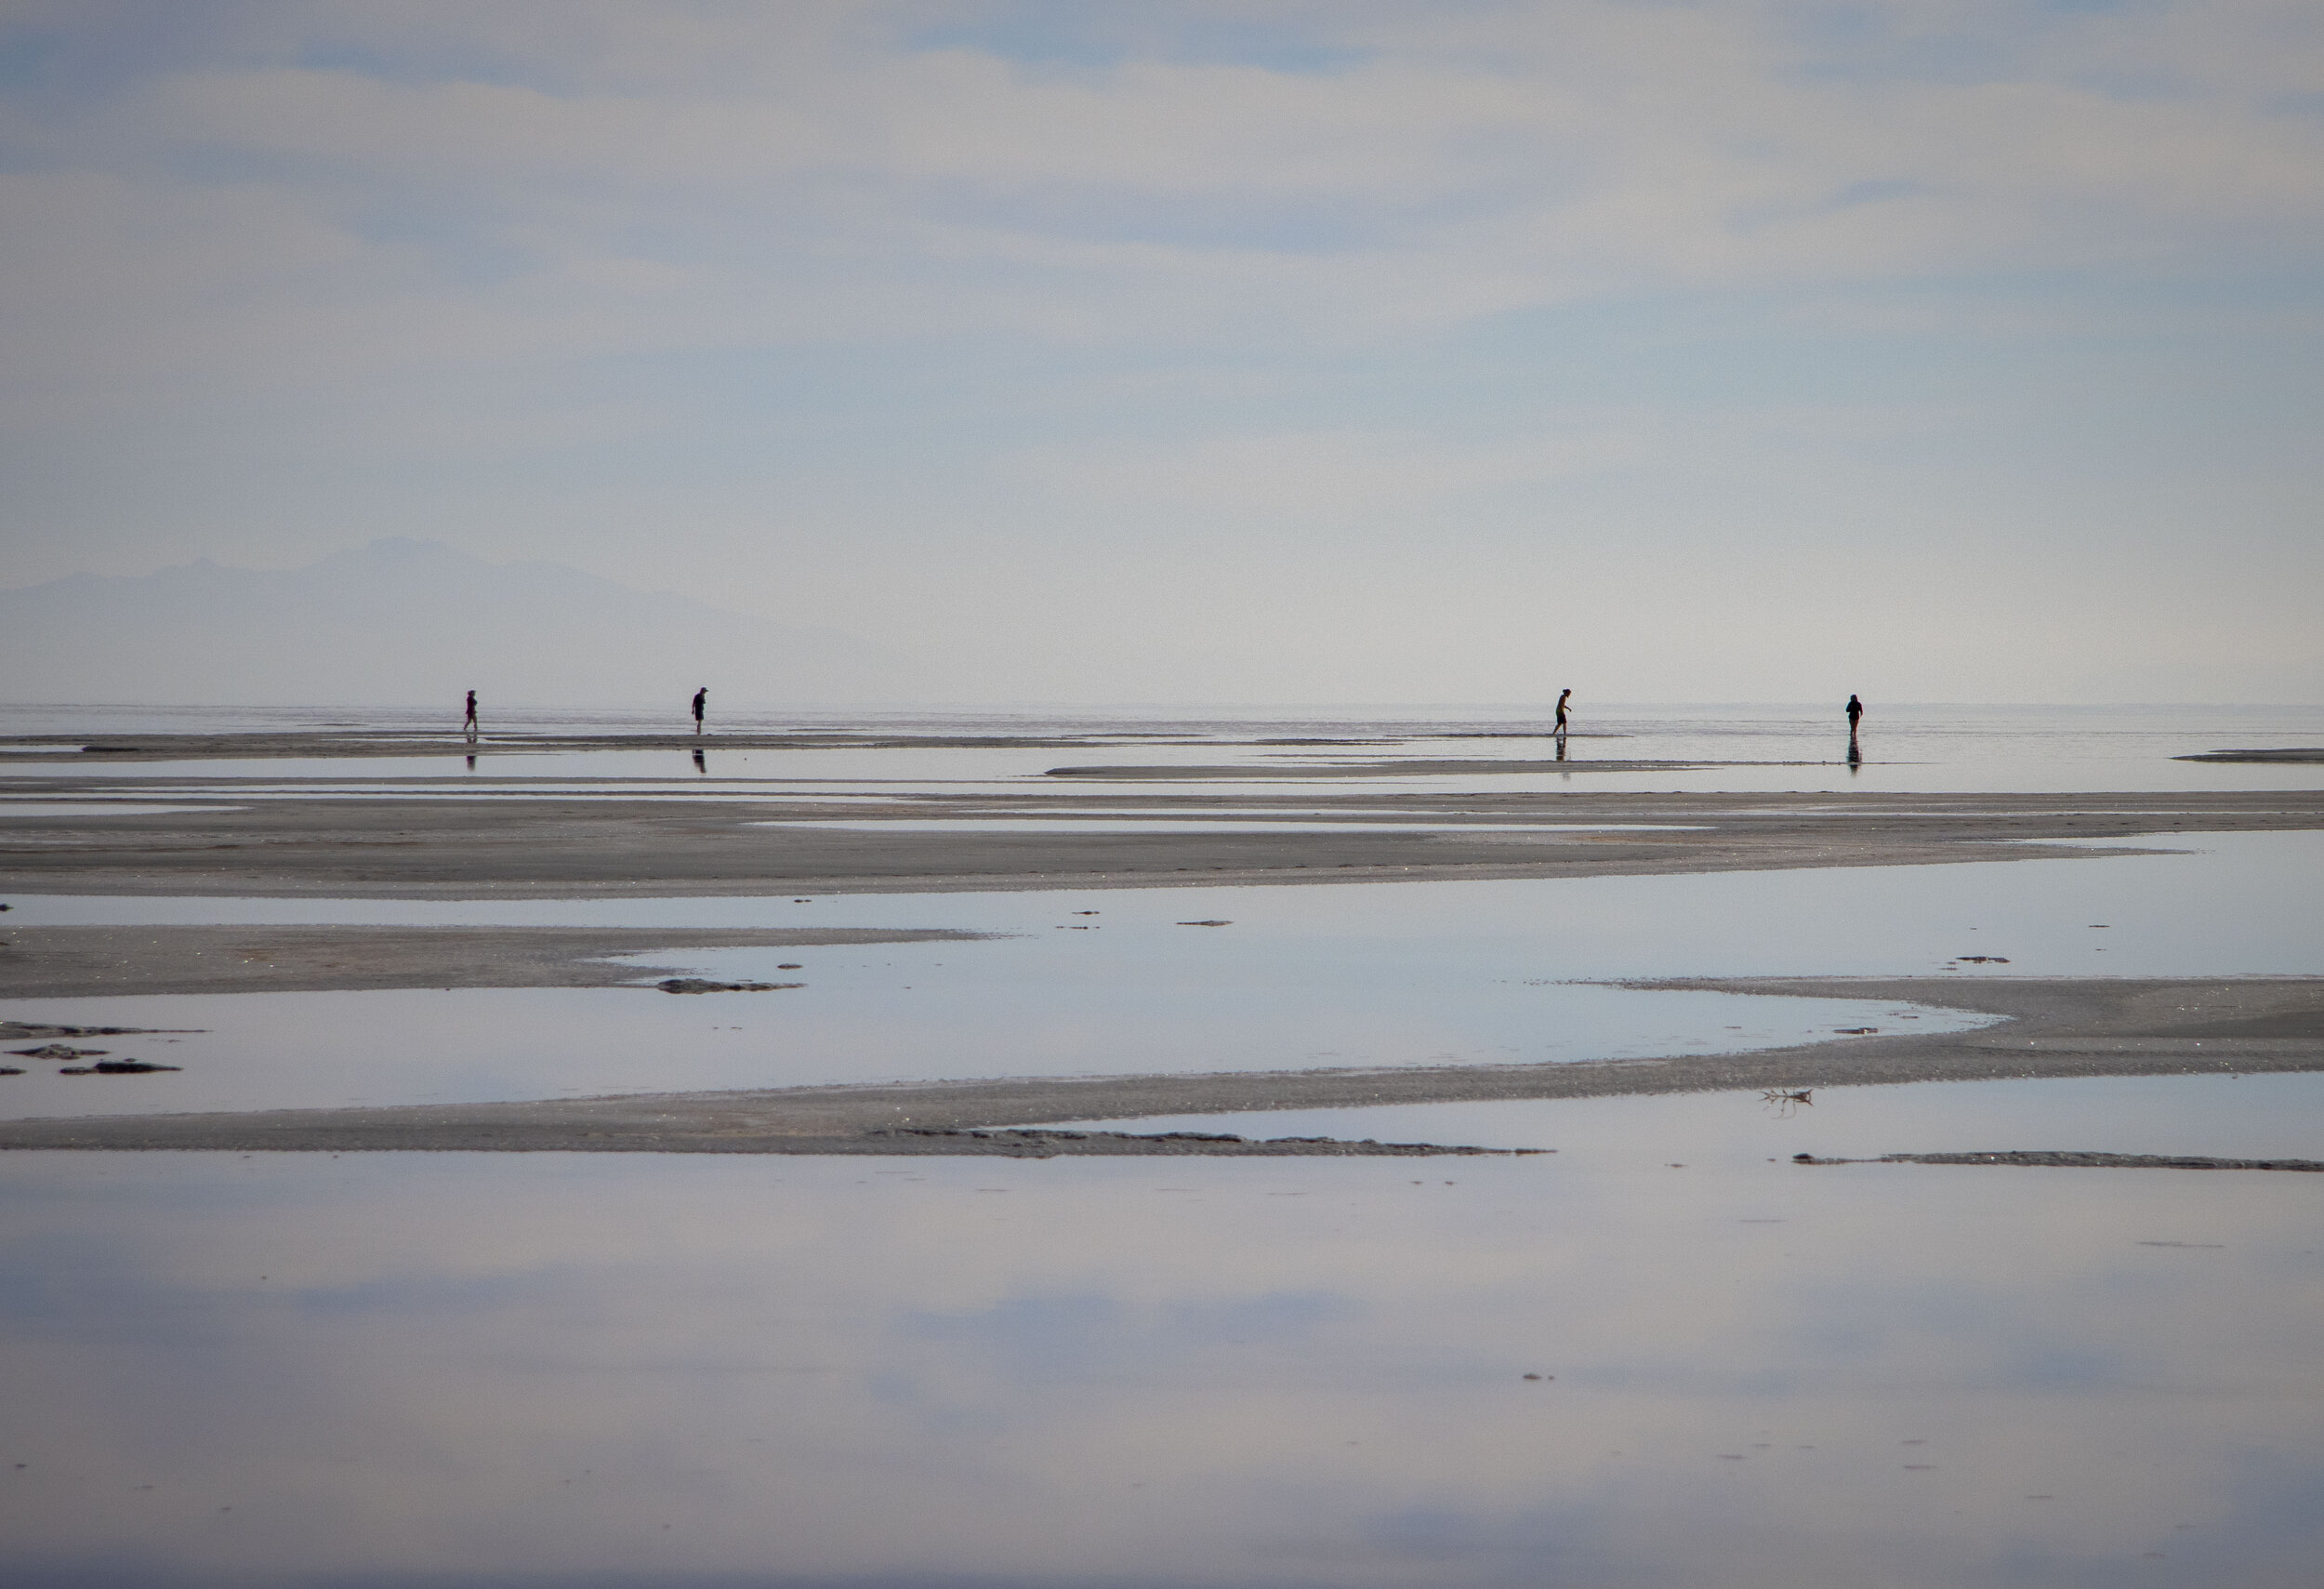 Visitors to the northern area of the Great Salt Lake